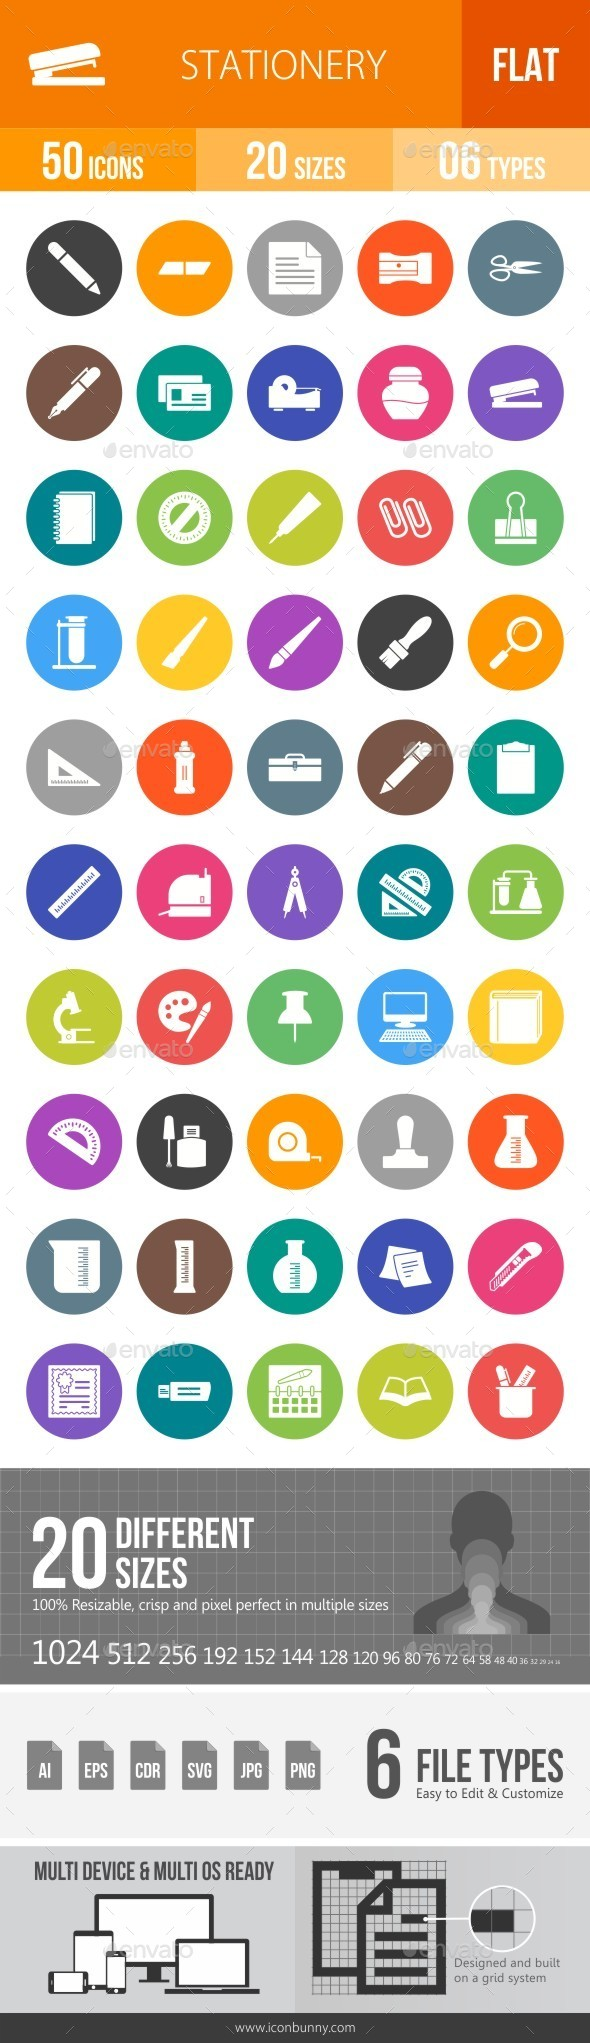 Stationery Flat Round Icons - Icons